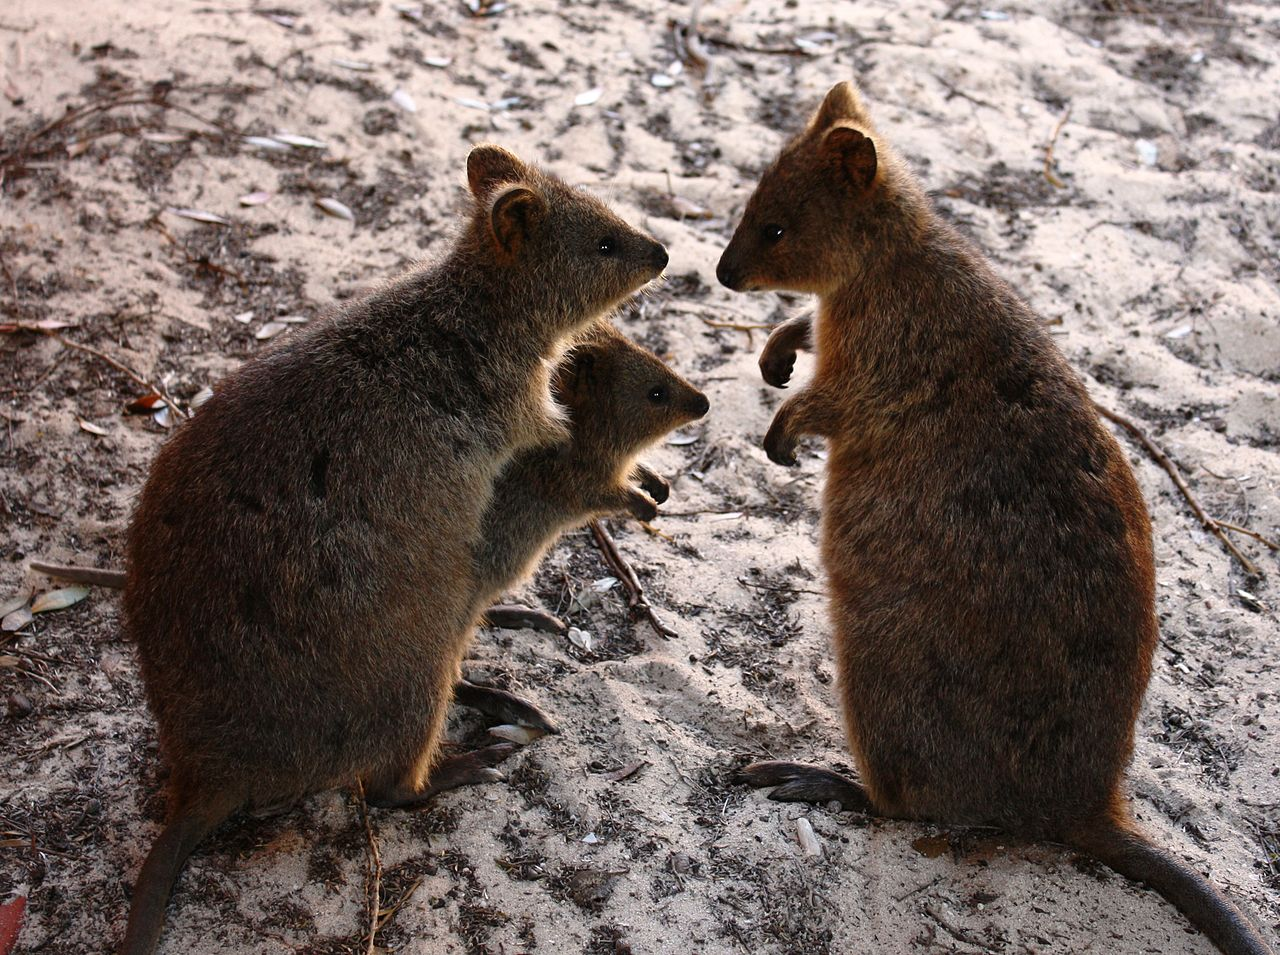 Quokka family by Hesperian Wikimedia Commons